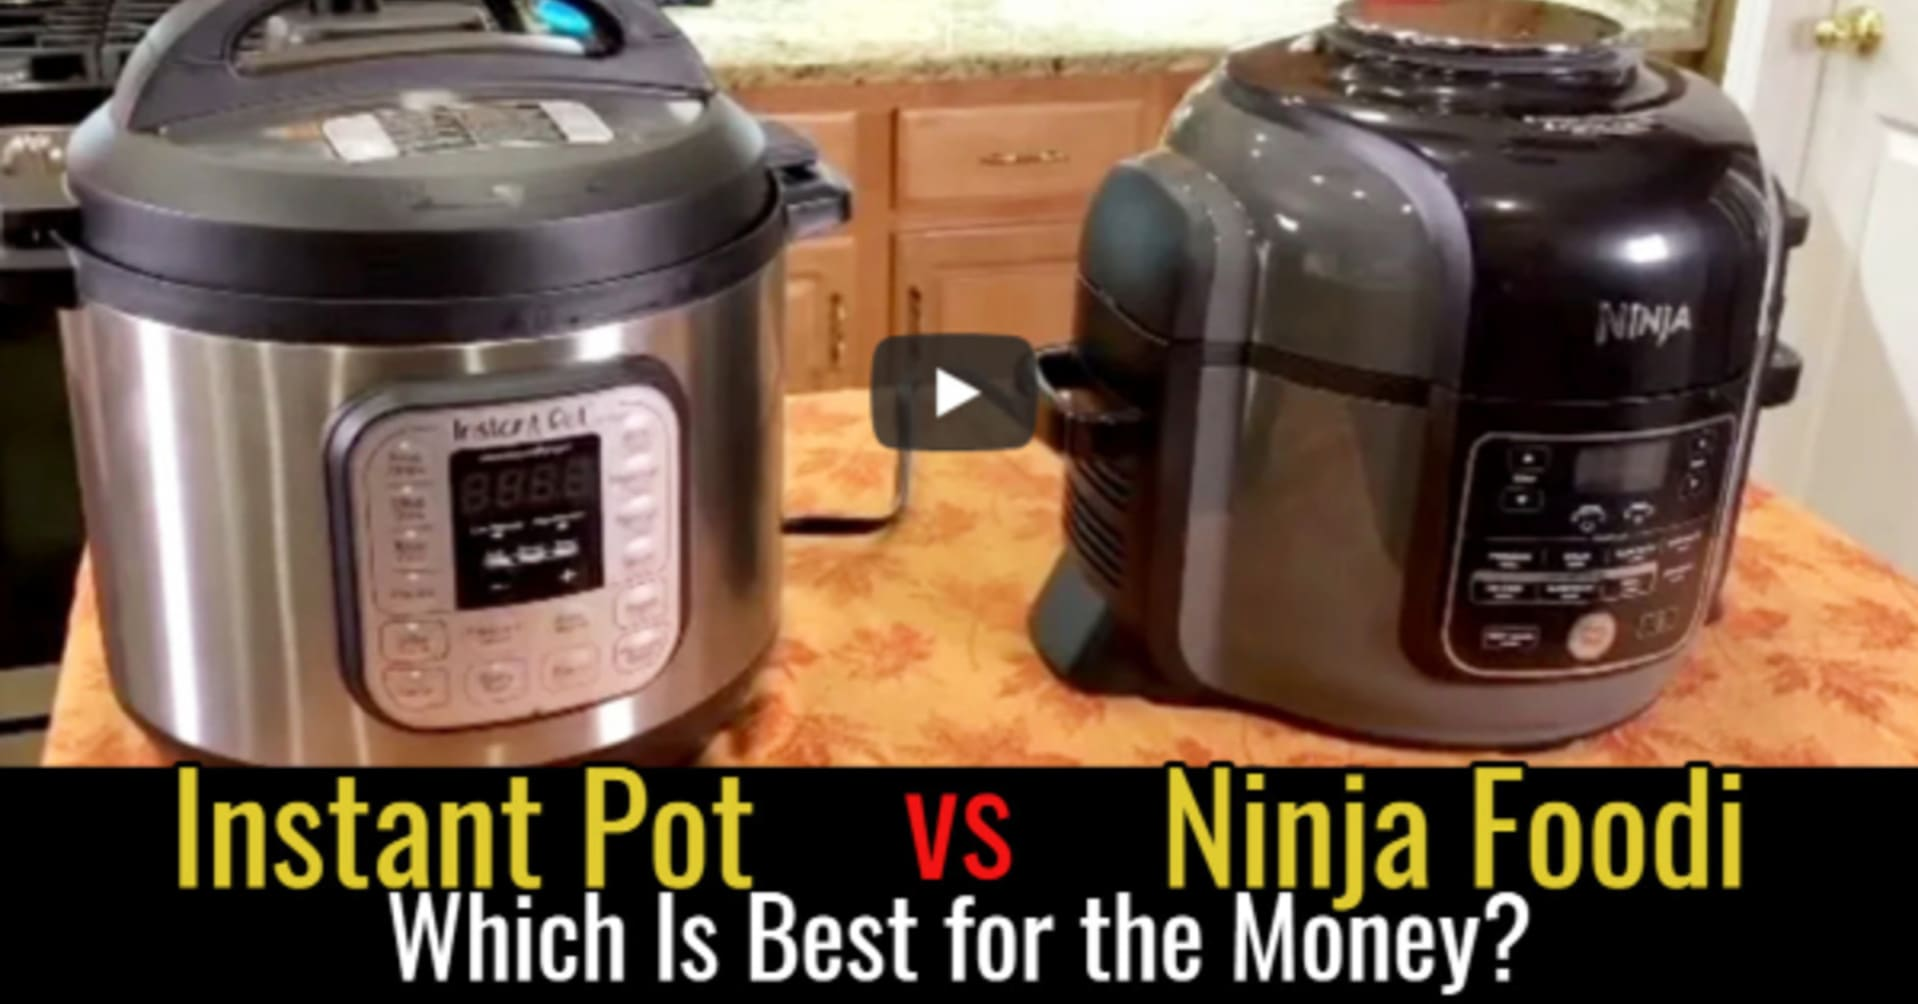 Instant Pot vs Ninja Foodi Instant Pot - which instant pot pressure cooker is best for the money?